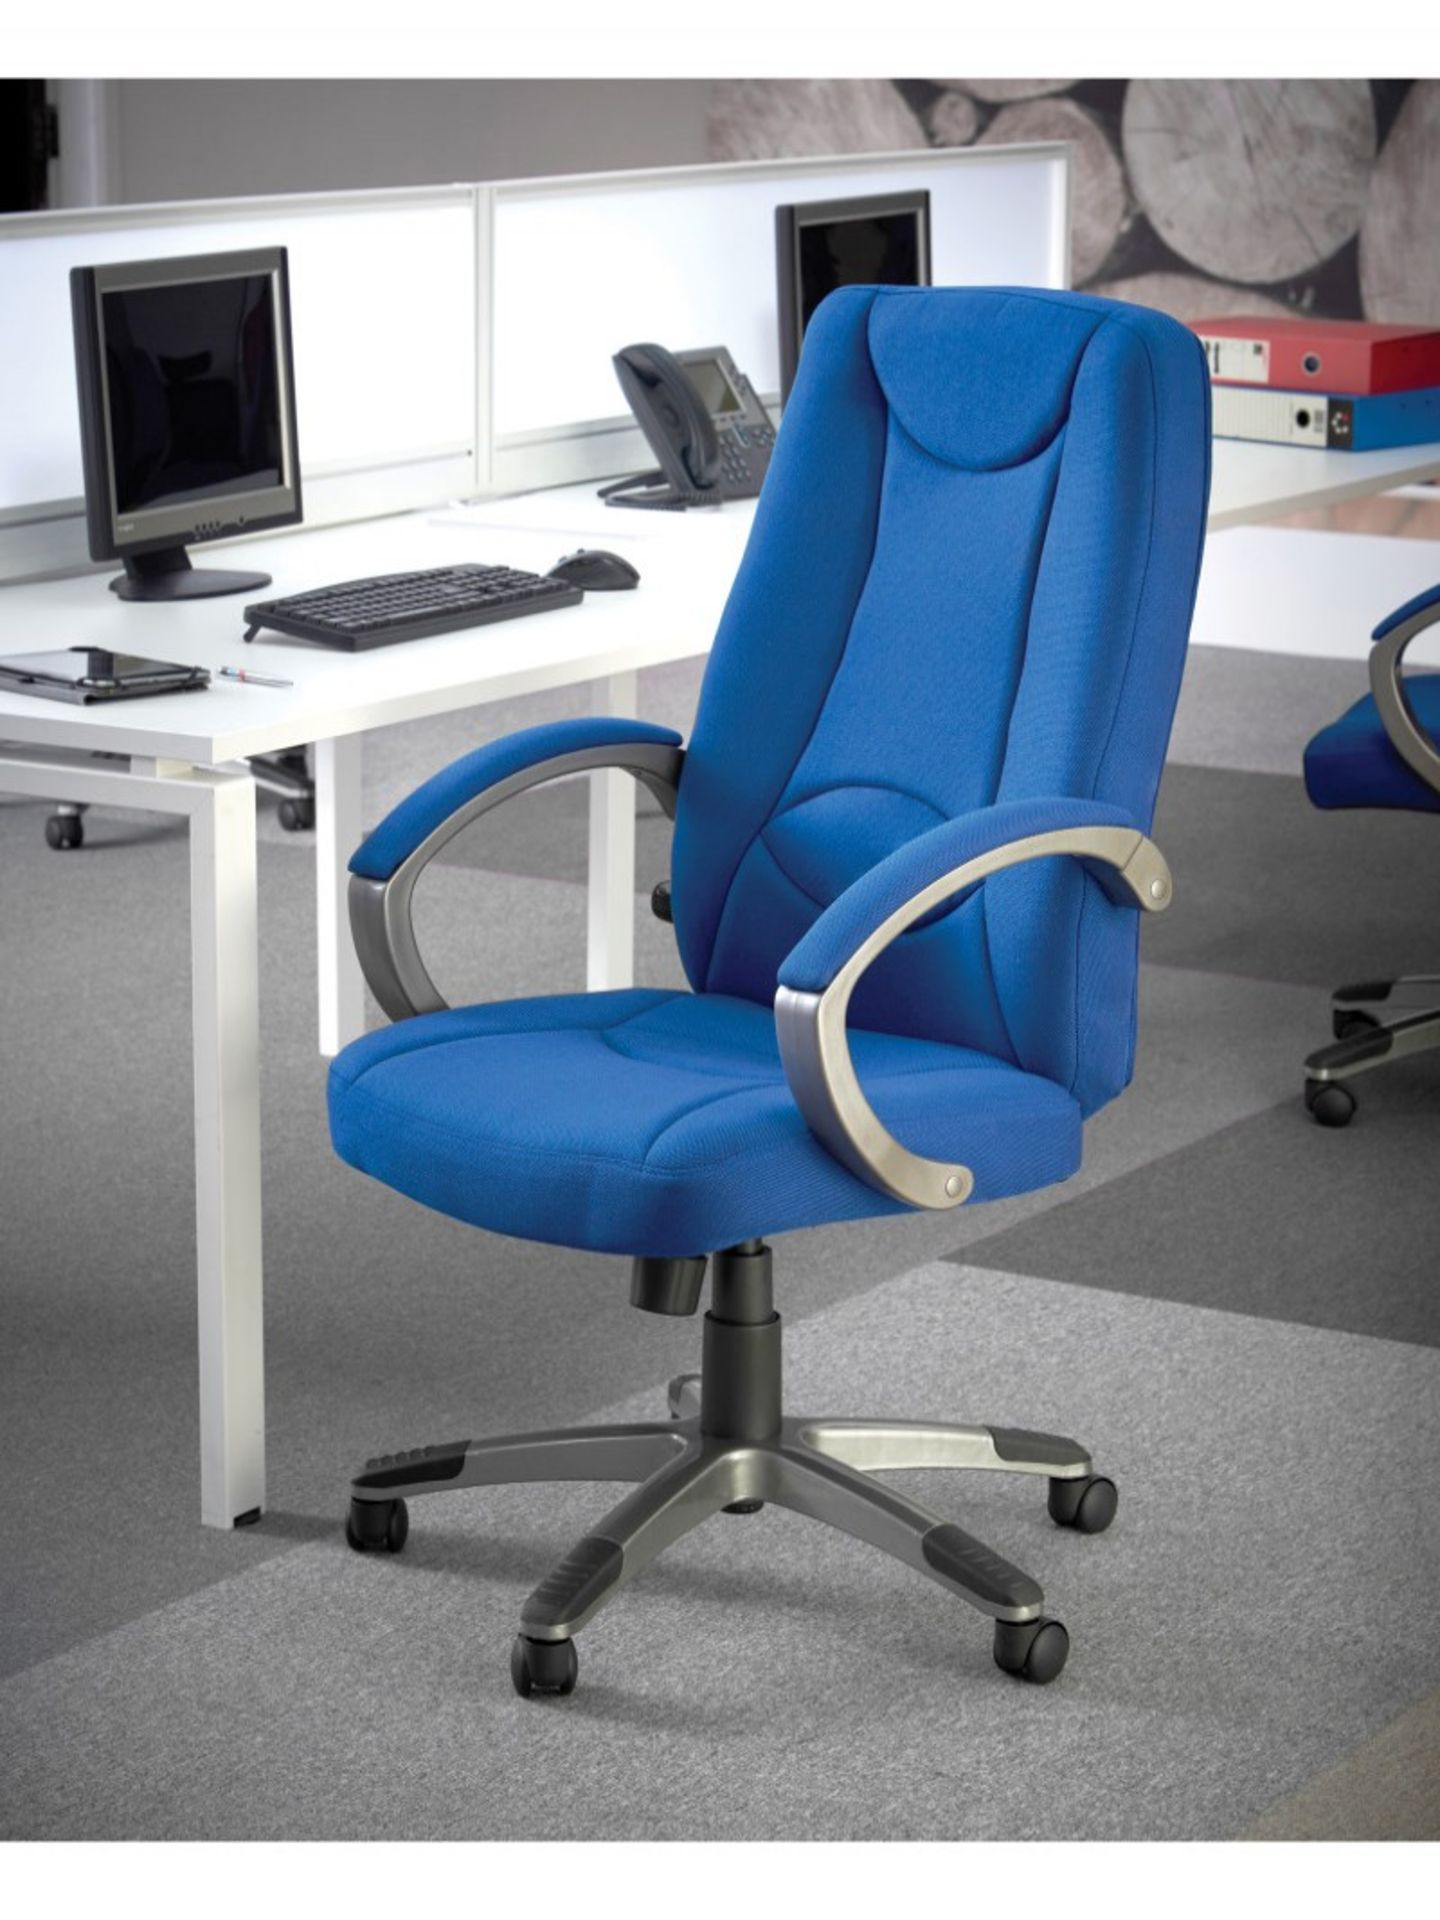 1 BOXED LUCCA OFFICE CHAIR IN BLUE - LUC300T1-B RRP £199